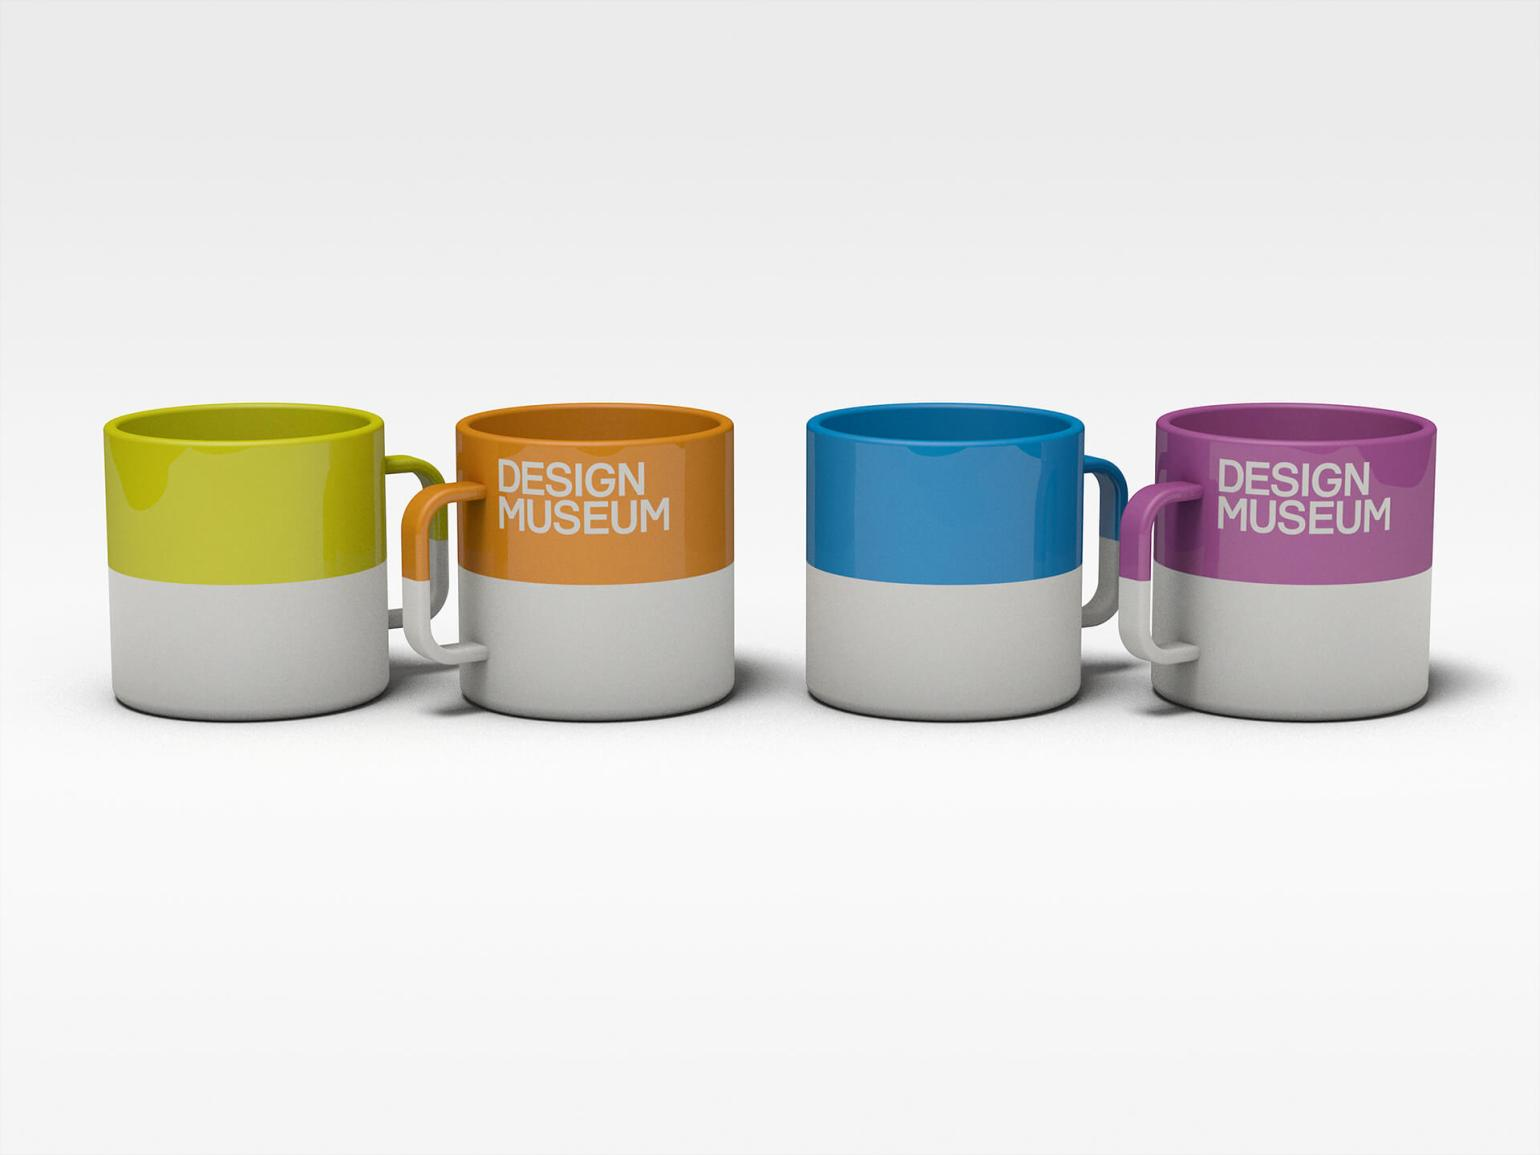 Design Museum Products 1920px 04